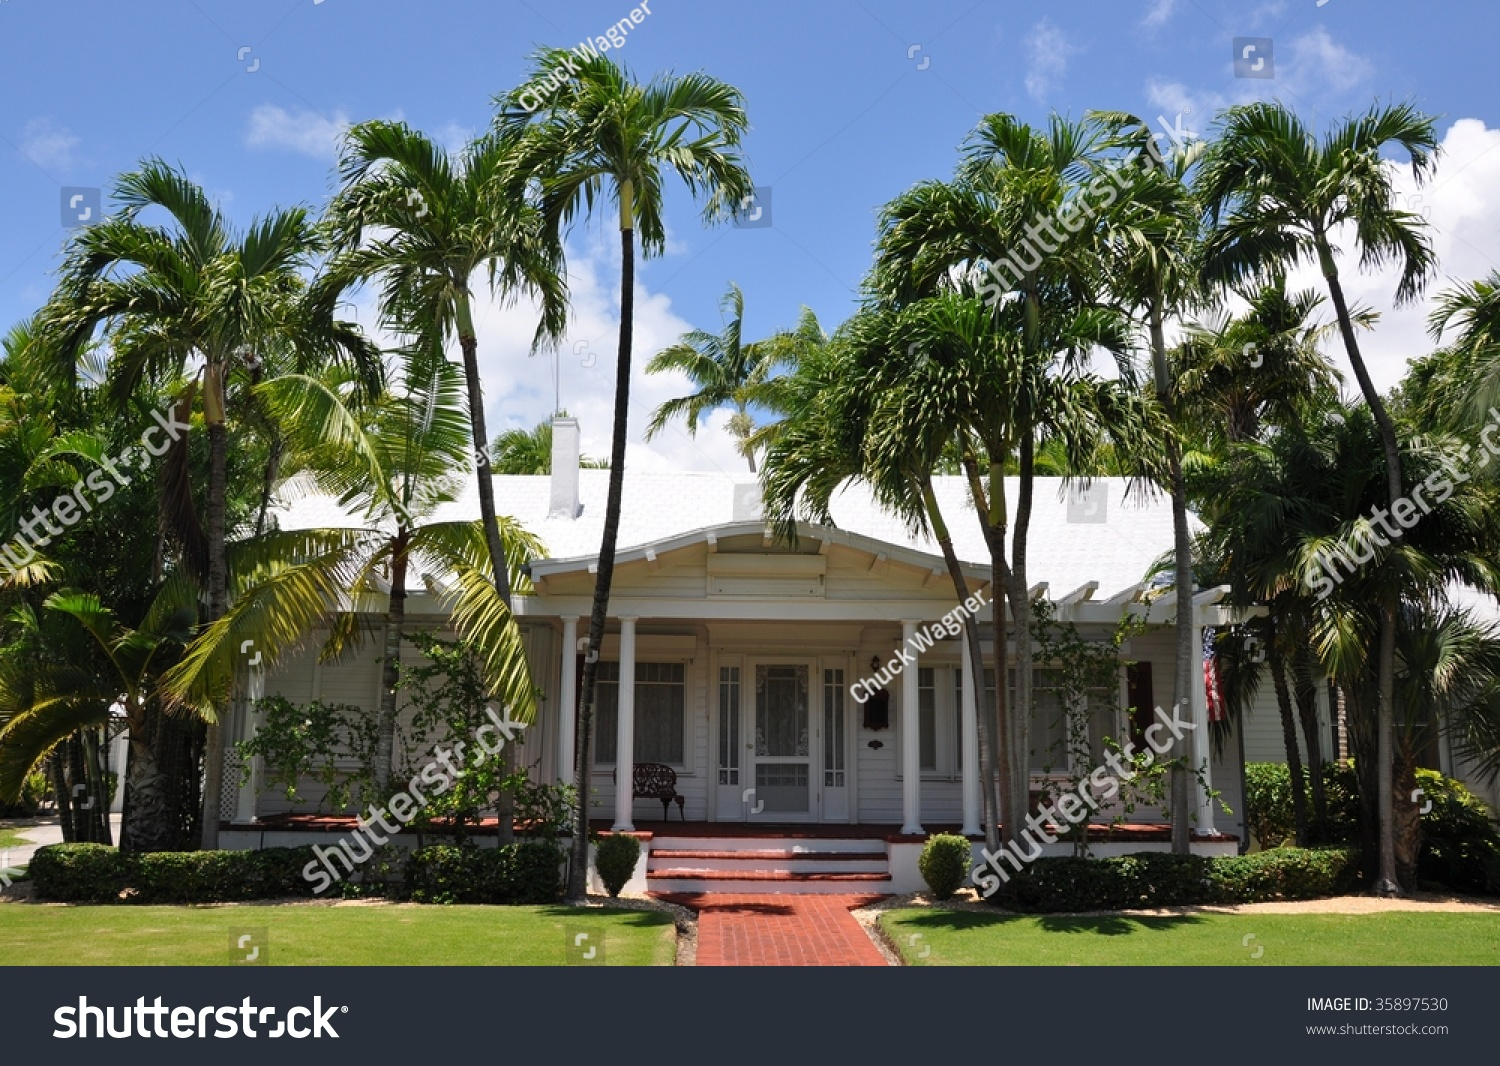 Key west style architecture stock photo 35897530 for Key west architecture style